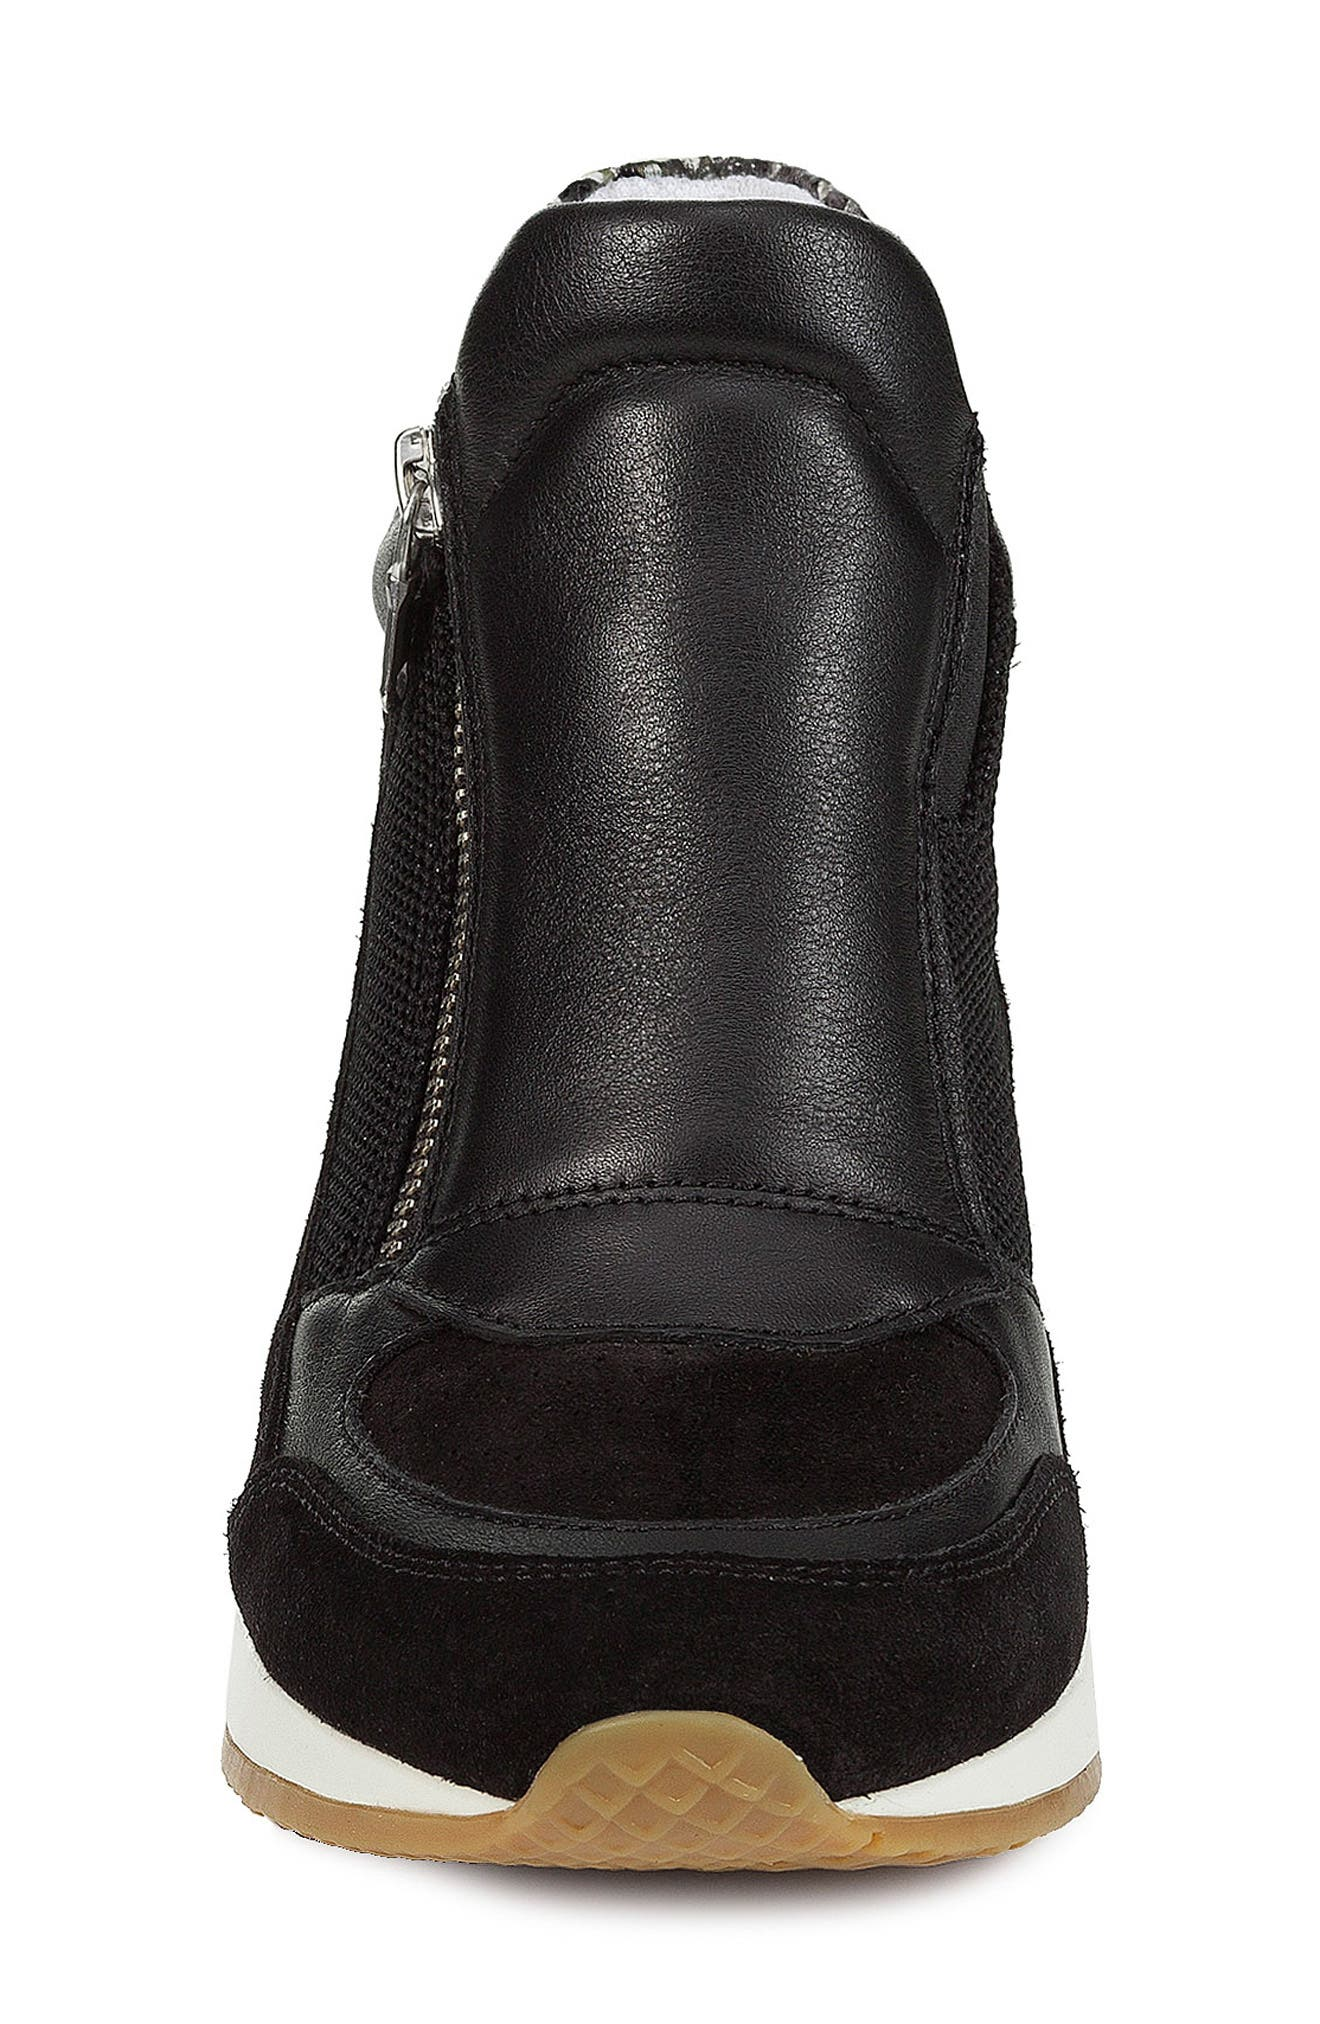 GEOX, Nydame Wedge Sneaker, Alternate thumbnail 4, color, BLACK/ BLACK LEATHER